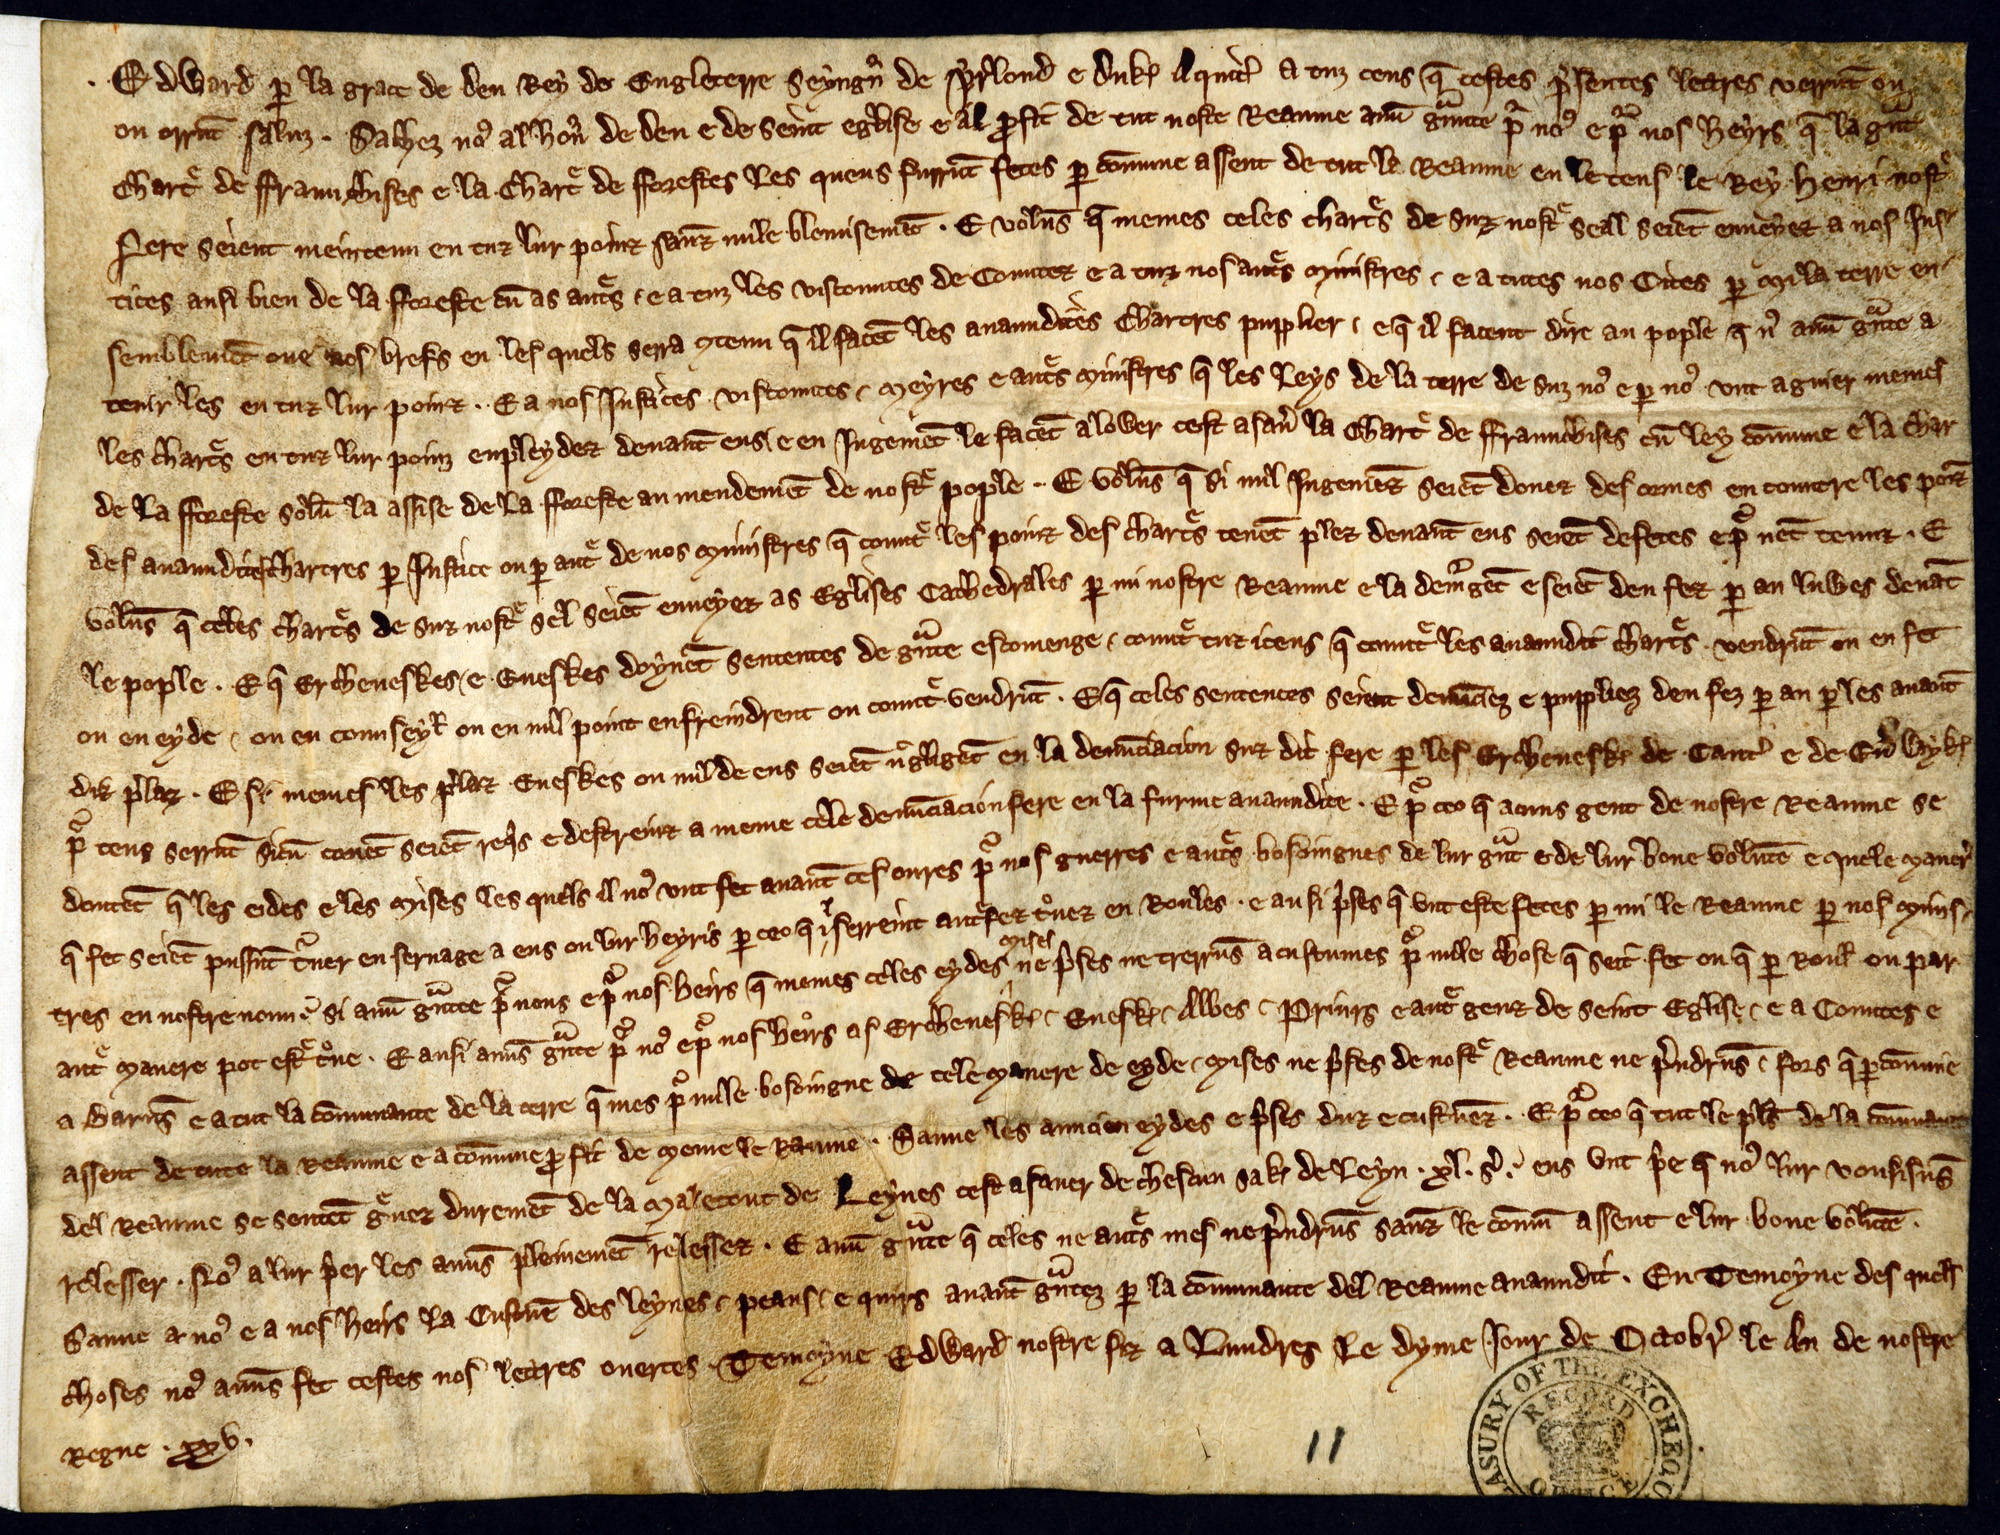 an essay on the magna carta The impact of the magna carta essays have you ever wondered where our past leaders got the idea for the american constitution the rights of freedom, equality, and justice for all, which are held sacred, were not always guaranteed for all citizens.